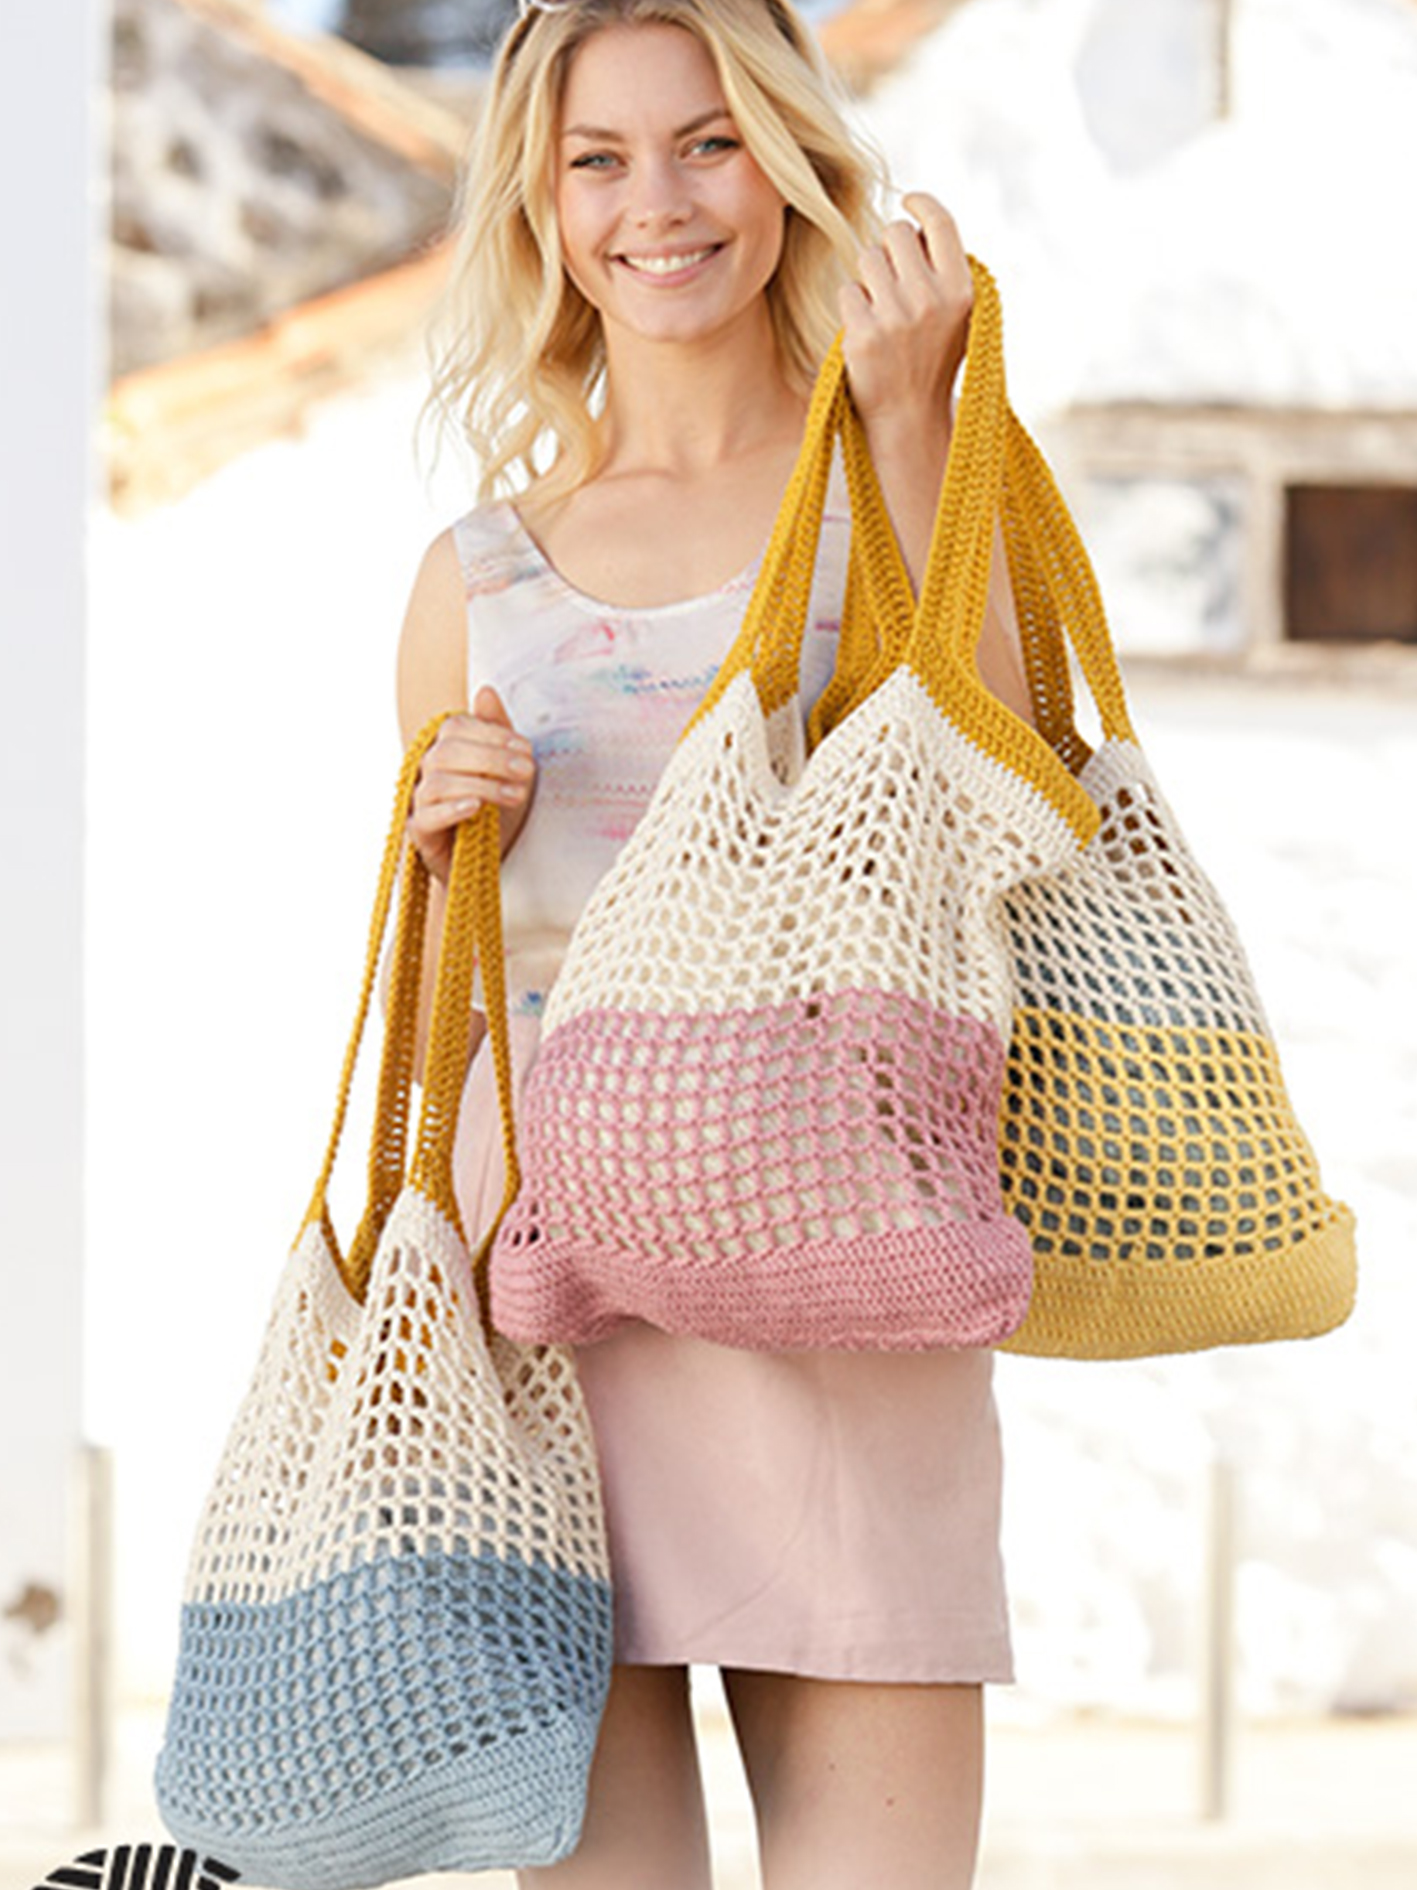 35-free-crochet-bag-patterns-you-can-make-fabulous-bags-in-3-days-new-2019